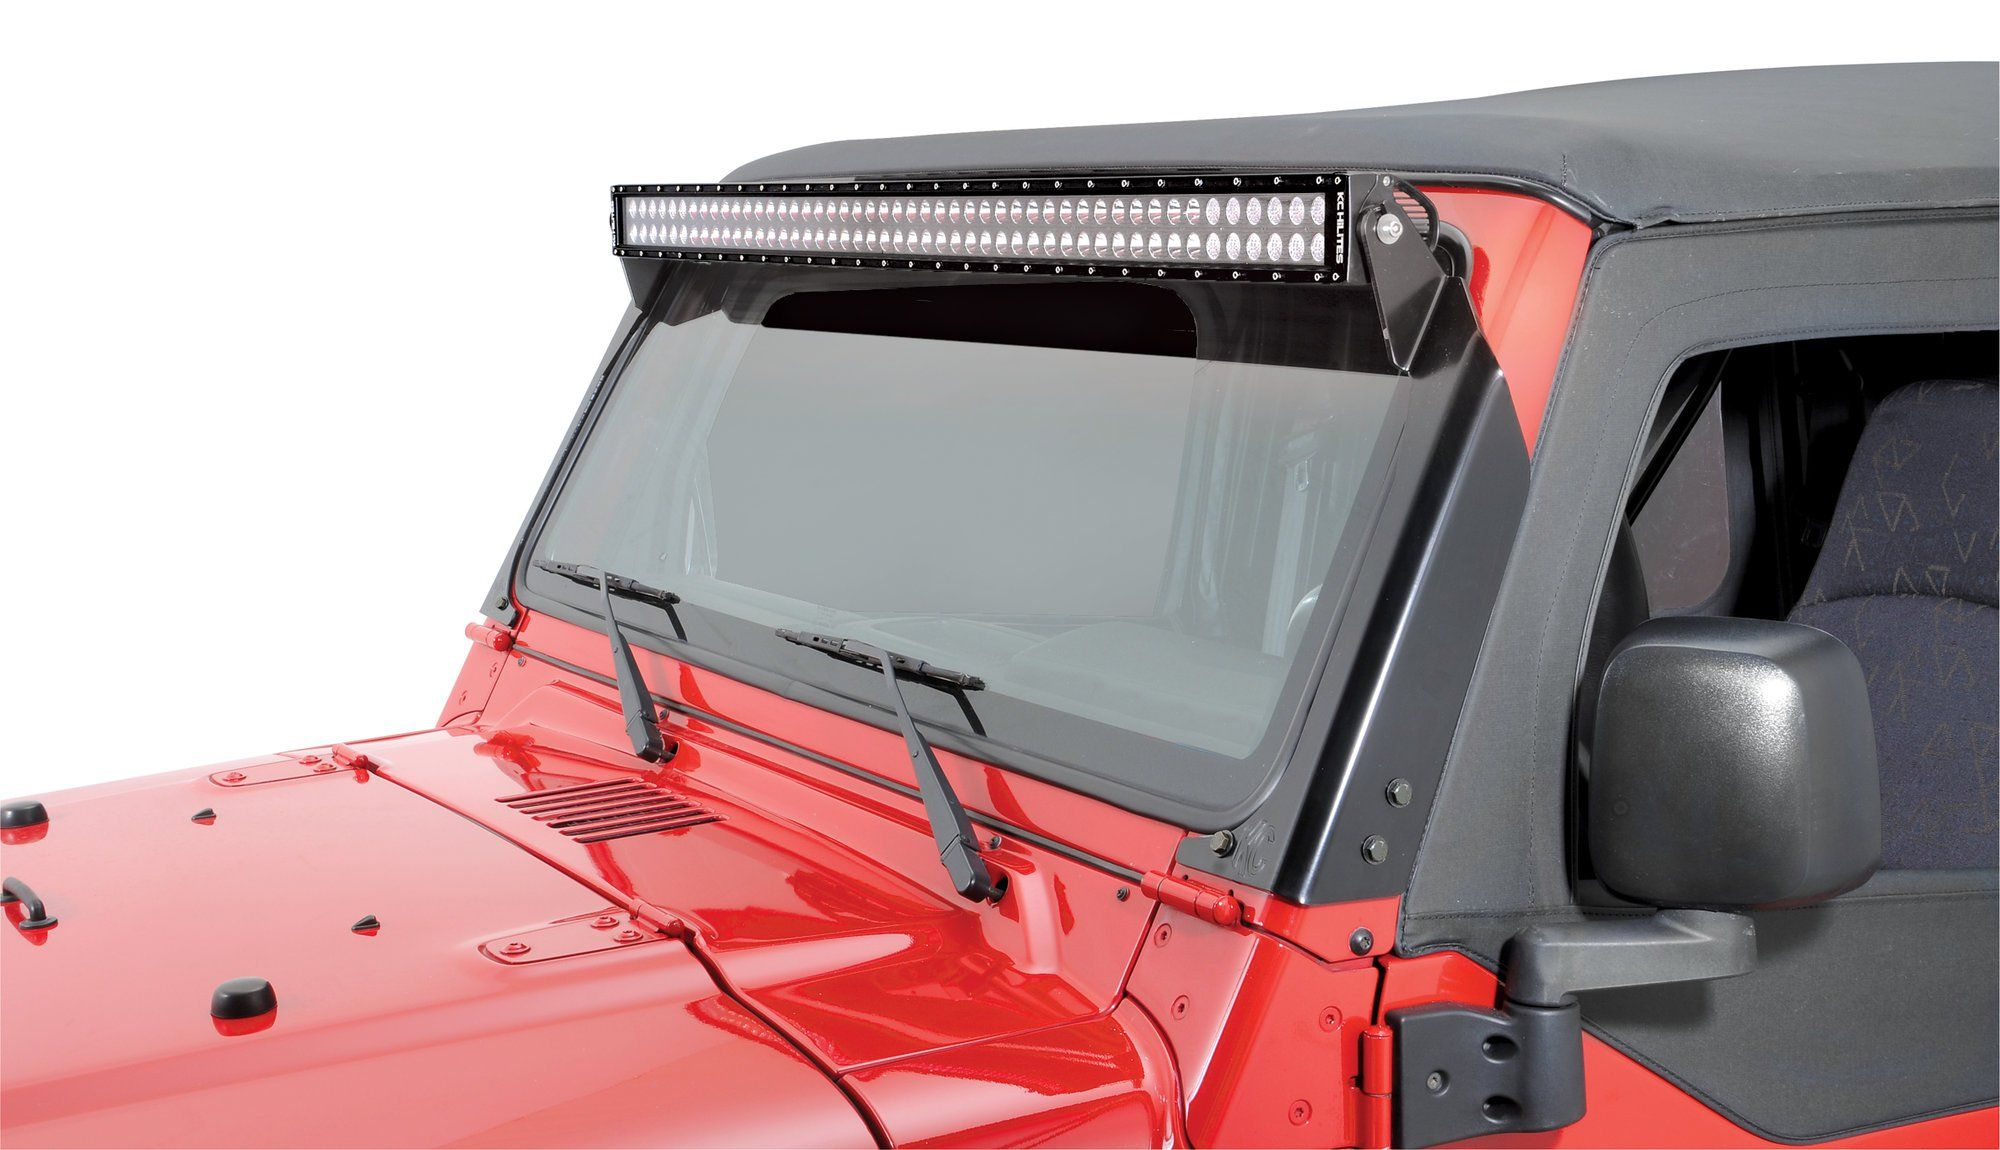 Kc Hilites 369 C50 Led Combo Beam Light Bar With Harness Mounting Brackets For 97 06 Jeep Wrangler Jeep Wrangler Tj Jeep Wrangler Accessories Jeep Wrangler